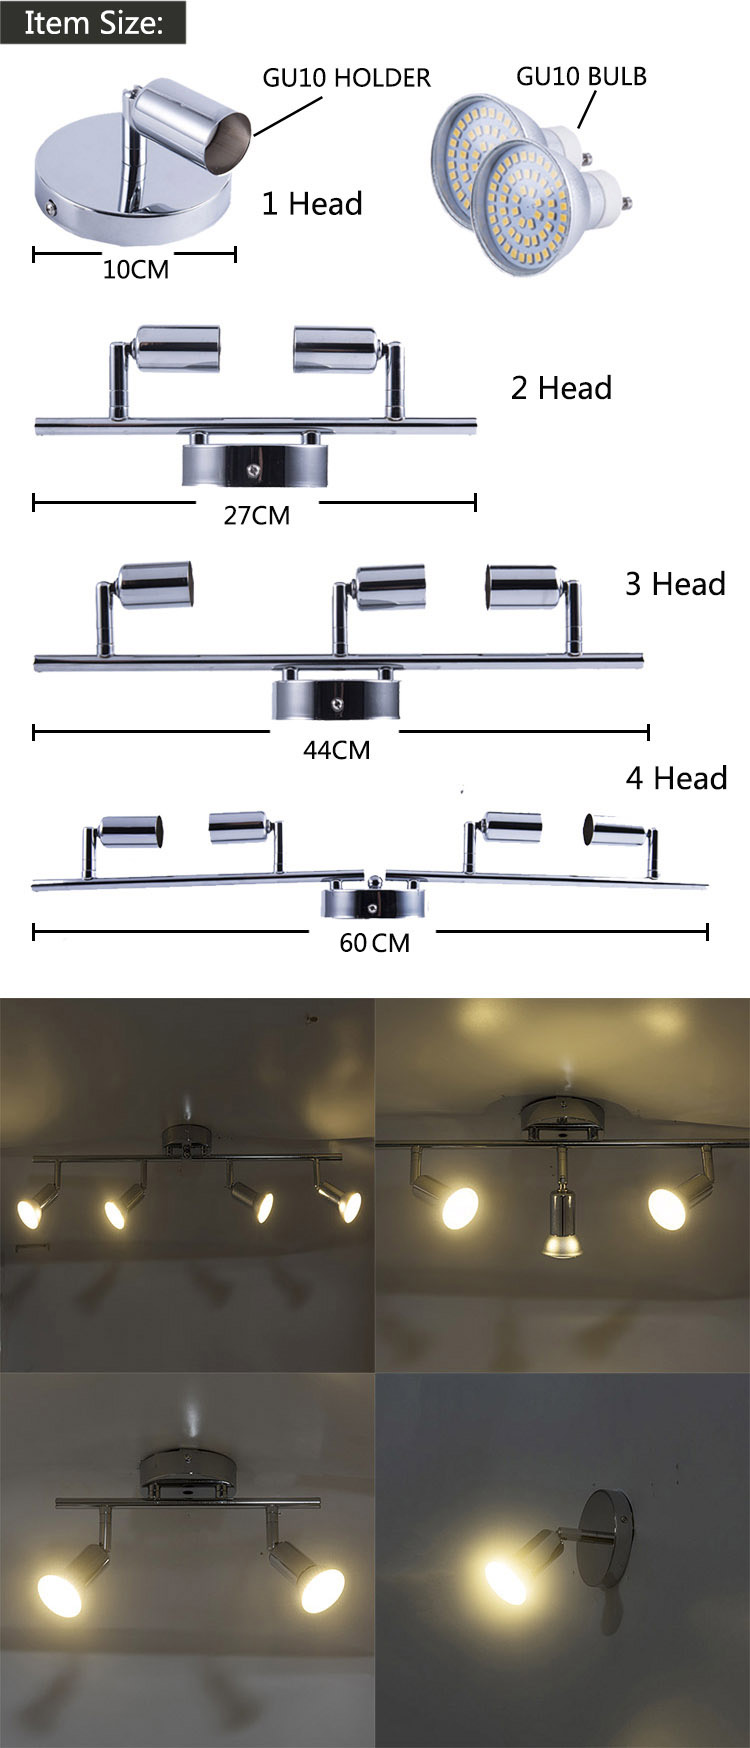 HTB1aAUjLFzqK1RjSZSgq6ApAVXa0 Rotatable led ceiling light angle adjustable showcase lamp with GU10 led bulb Living Room LED cabinet spot lighting